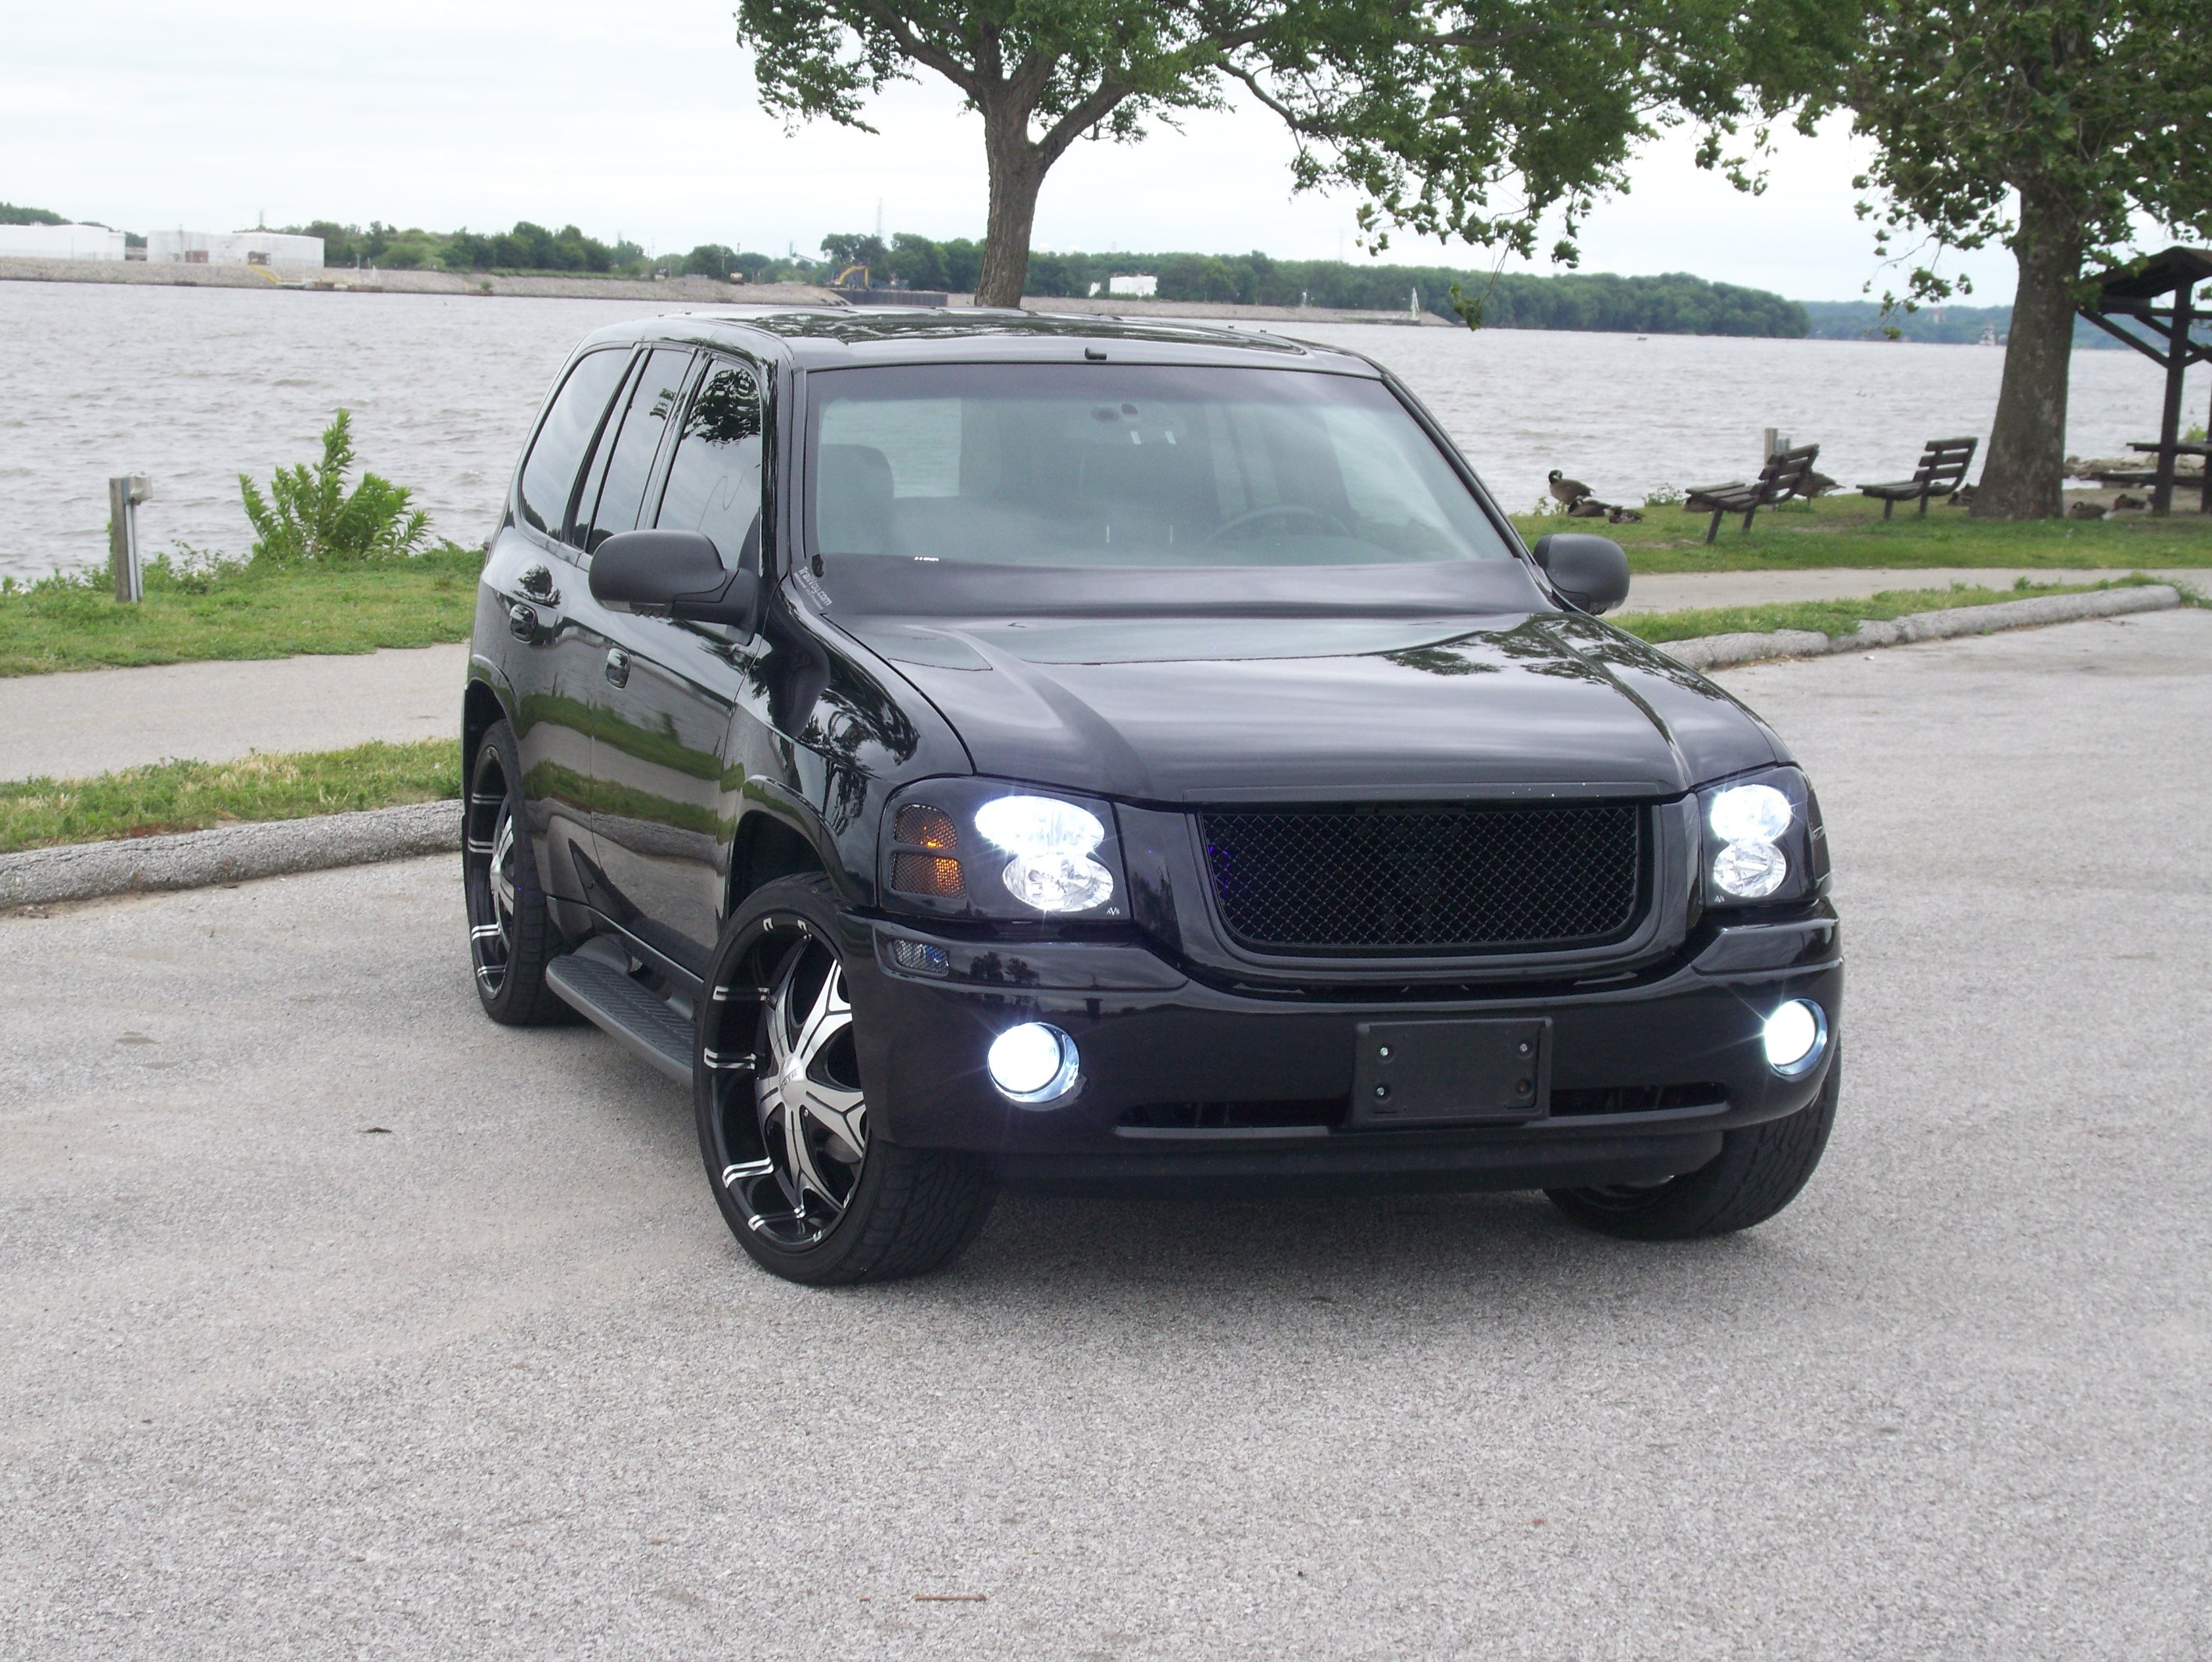 ct xl me en vehicles lineup detail presskits gmc models pages yukon denali for milford and content lead media